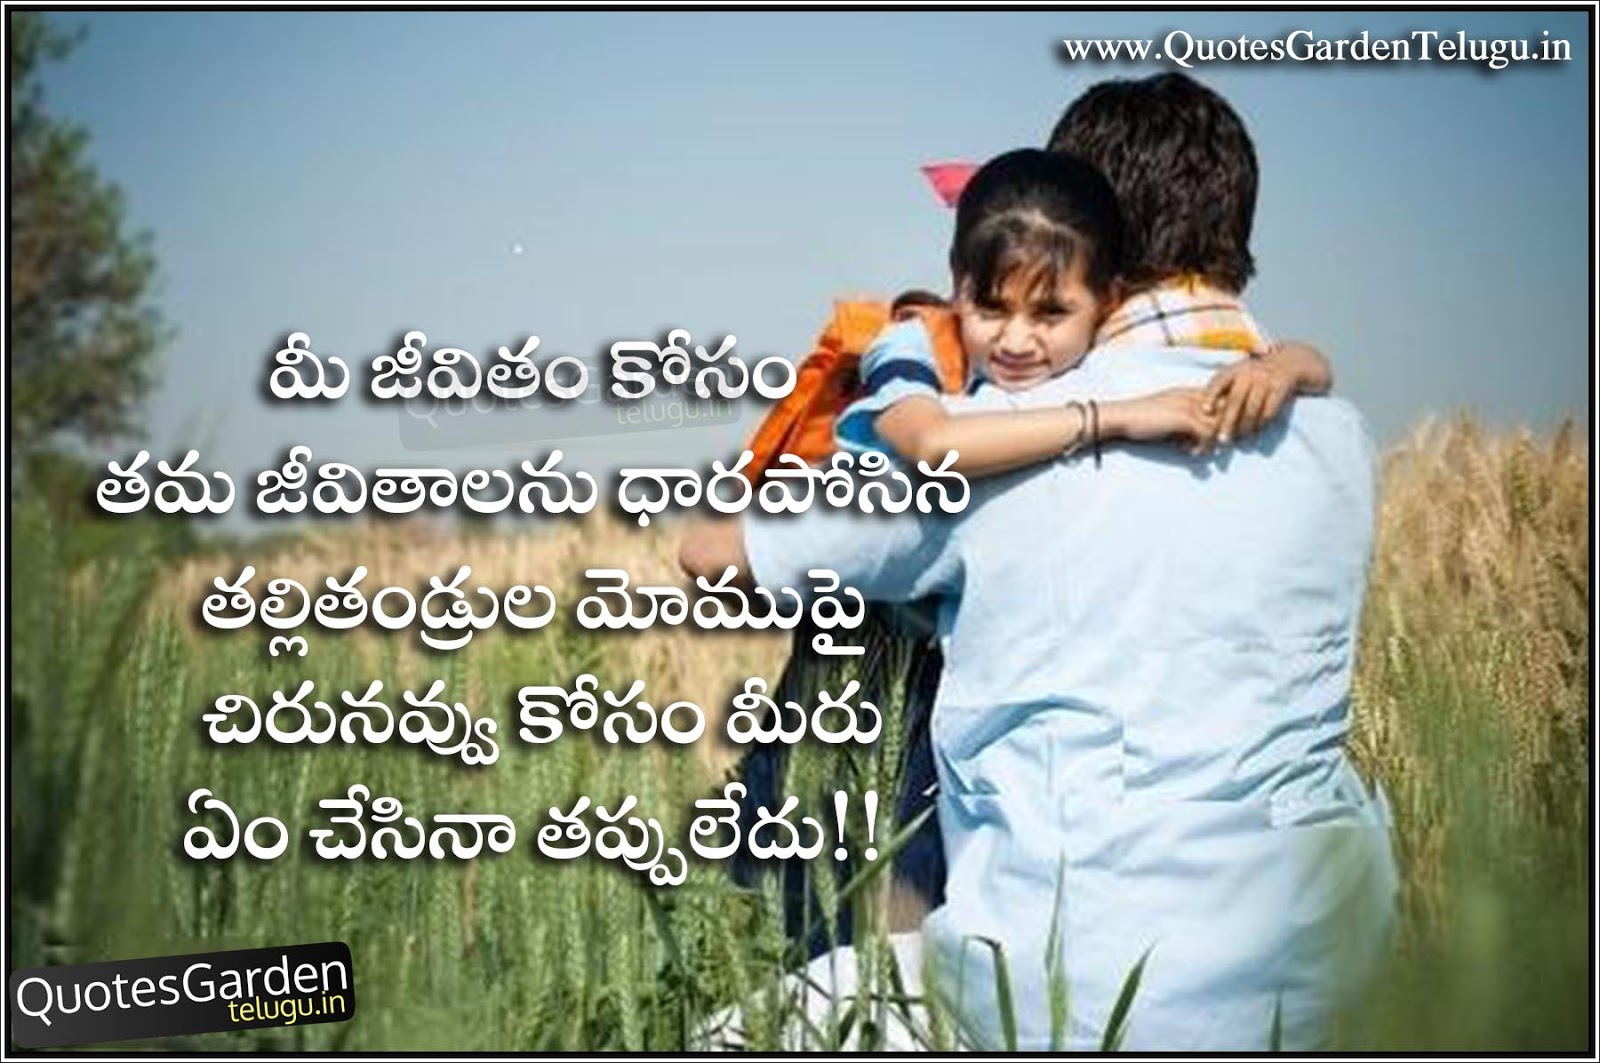 Ugadi Hd Wallpapers Free Download Inspirational Telugu Quotes For Students Quotes Garden